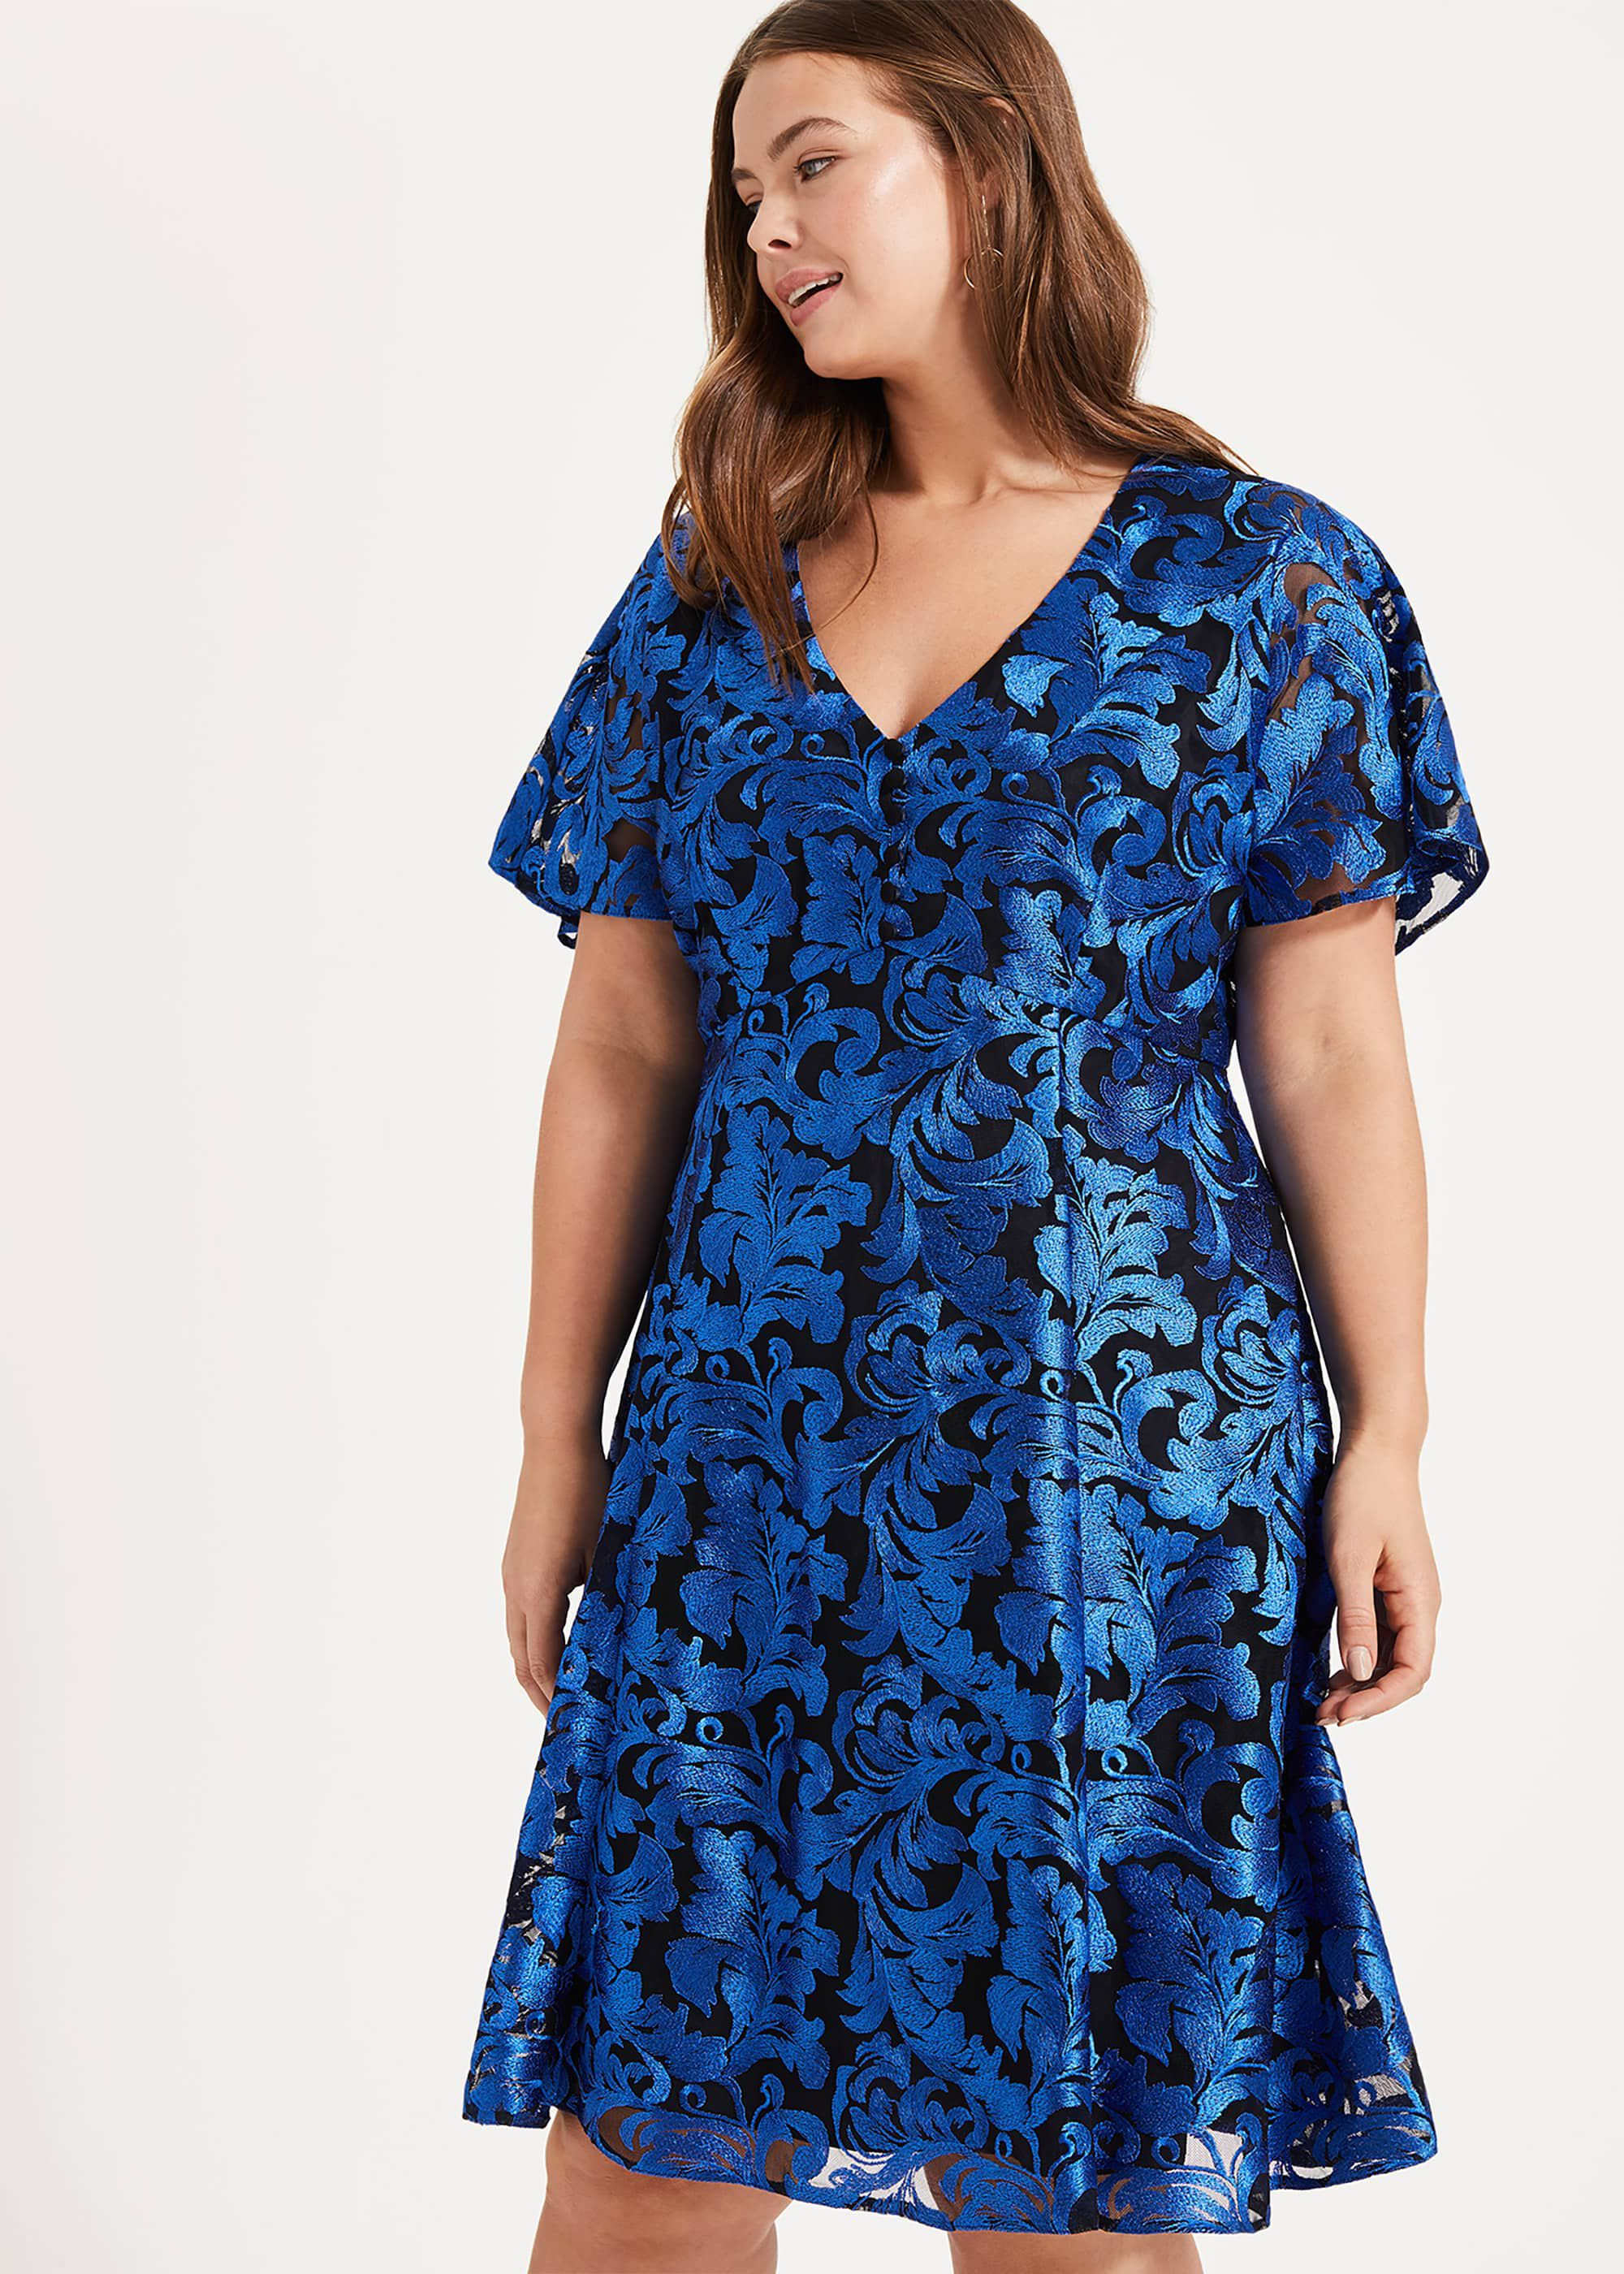 Studio 8 Althea Embroidered Dress, Blue, Cocktail, Occasion Dress